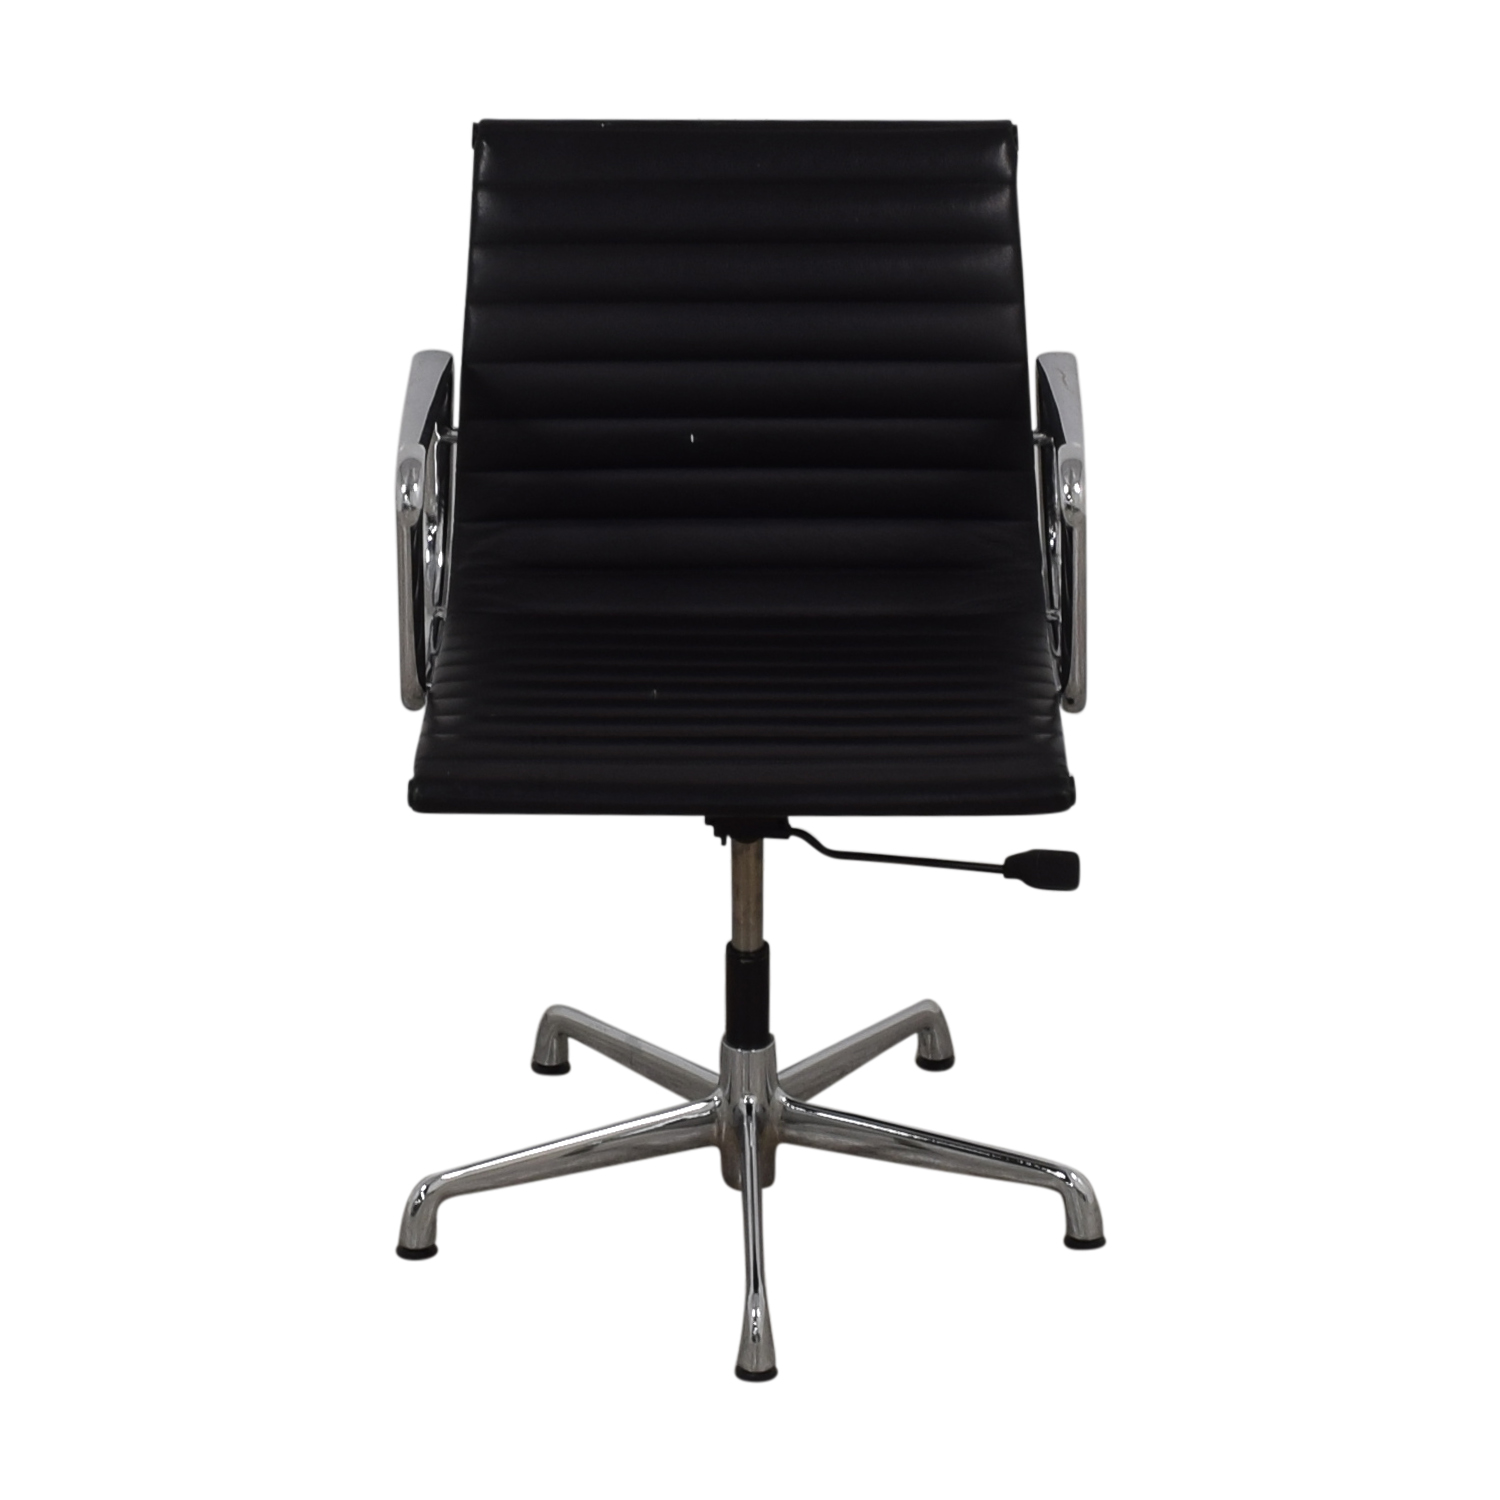 Herman Miller Herman Miller Eames Aluminum Black Leather Office Chair on sale